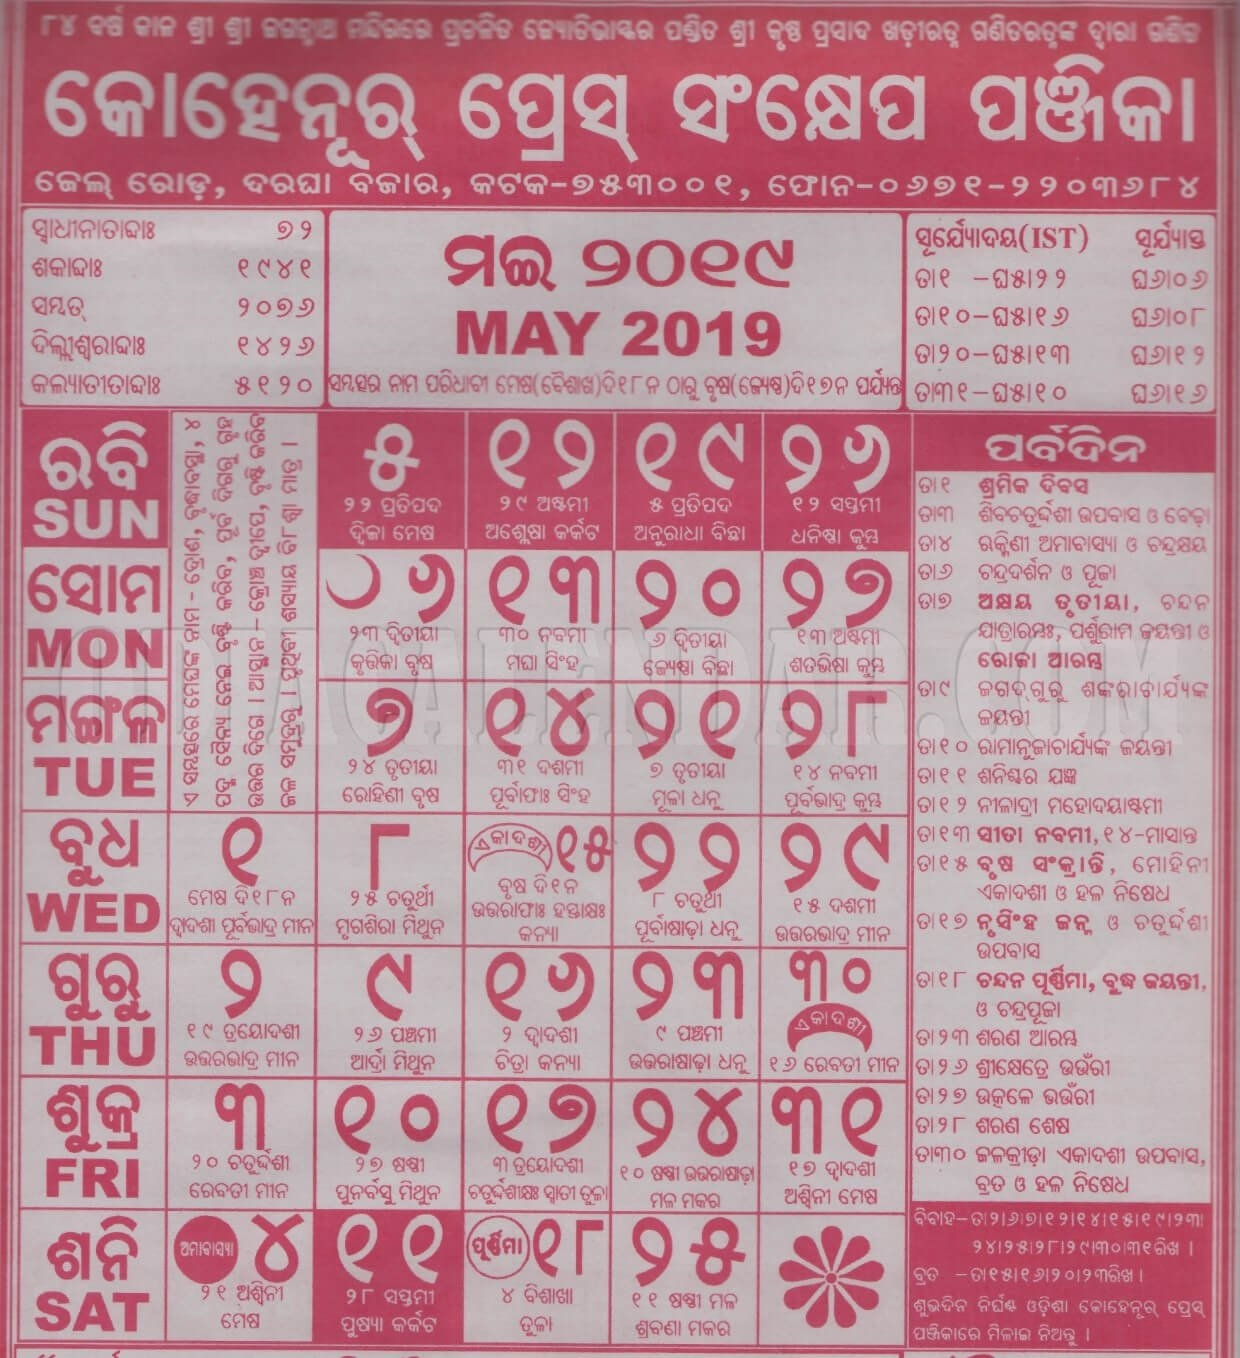 Odia Kohinoor Calendar 2019 May View And Download Free Calendar 2019 Kohinoor